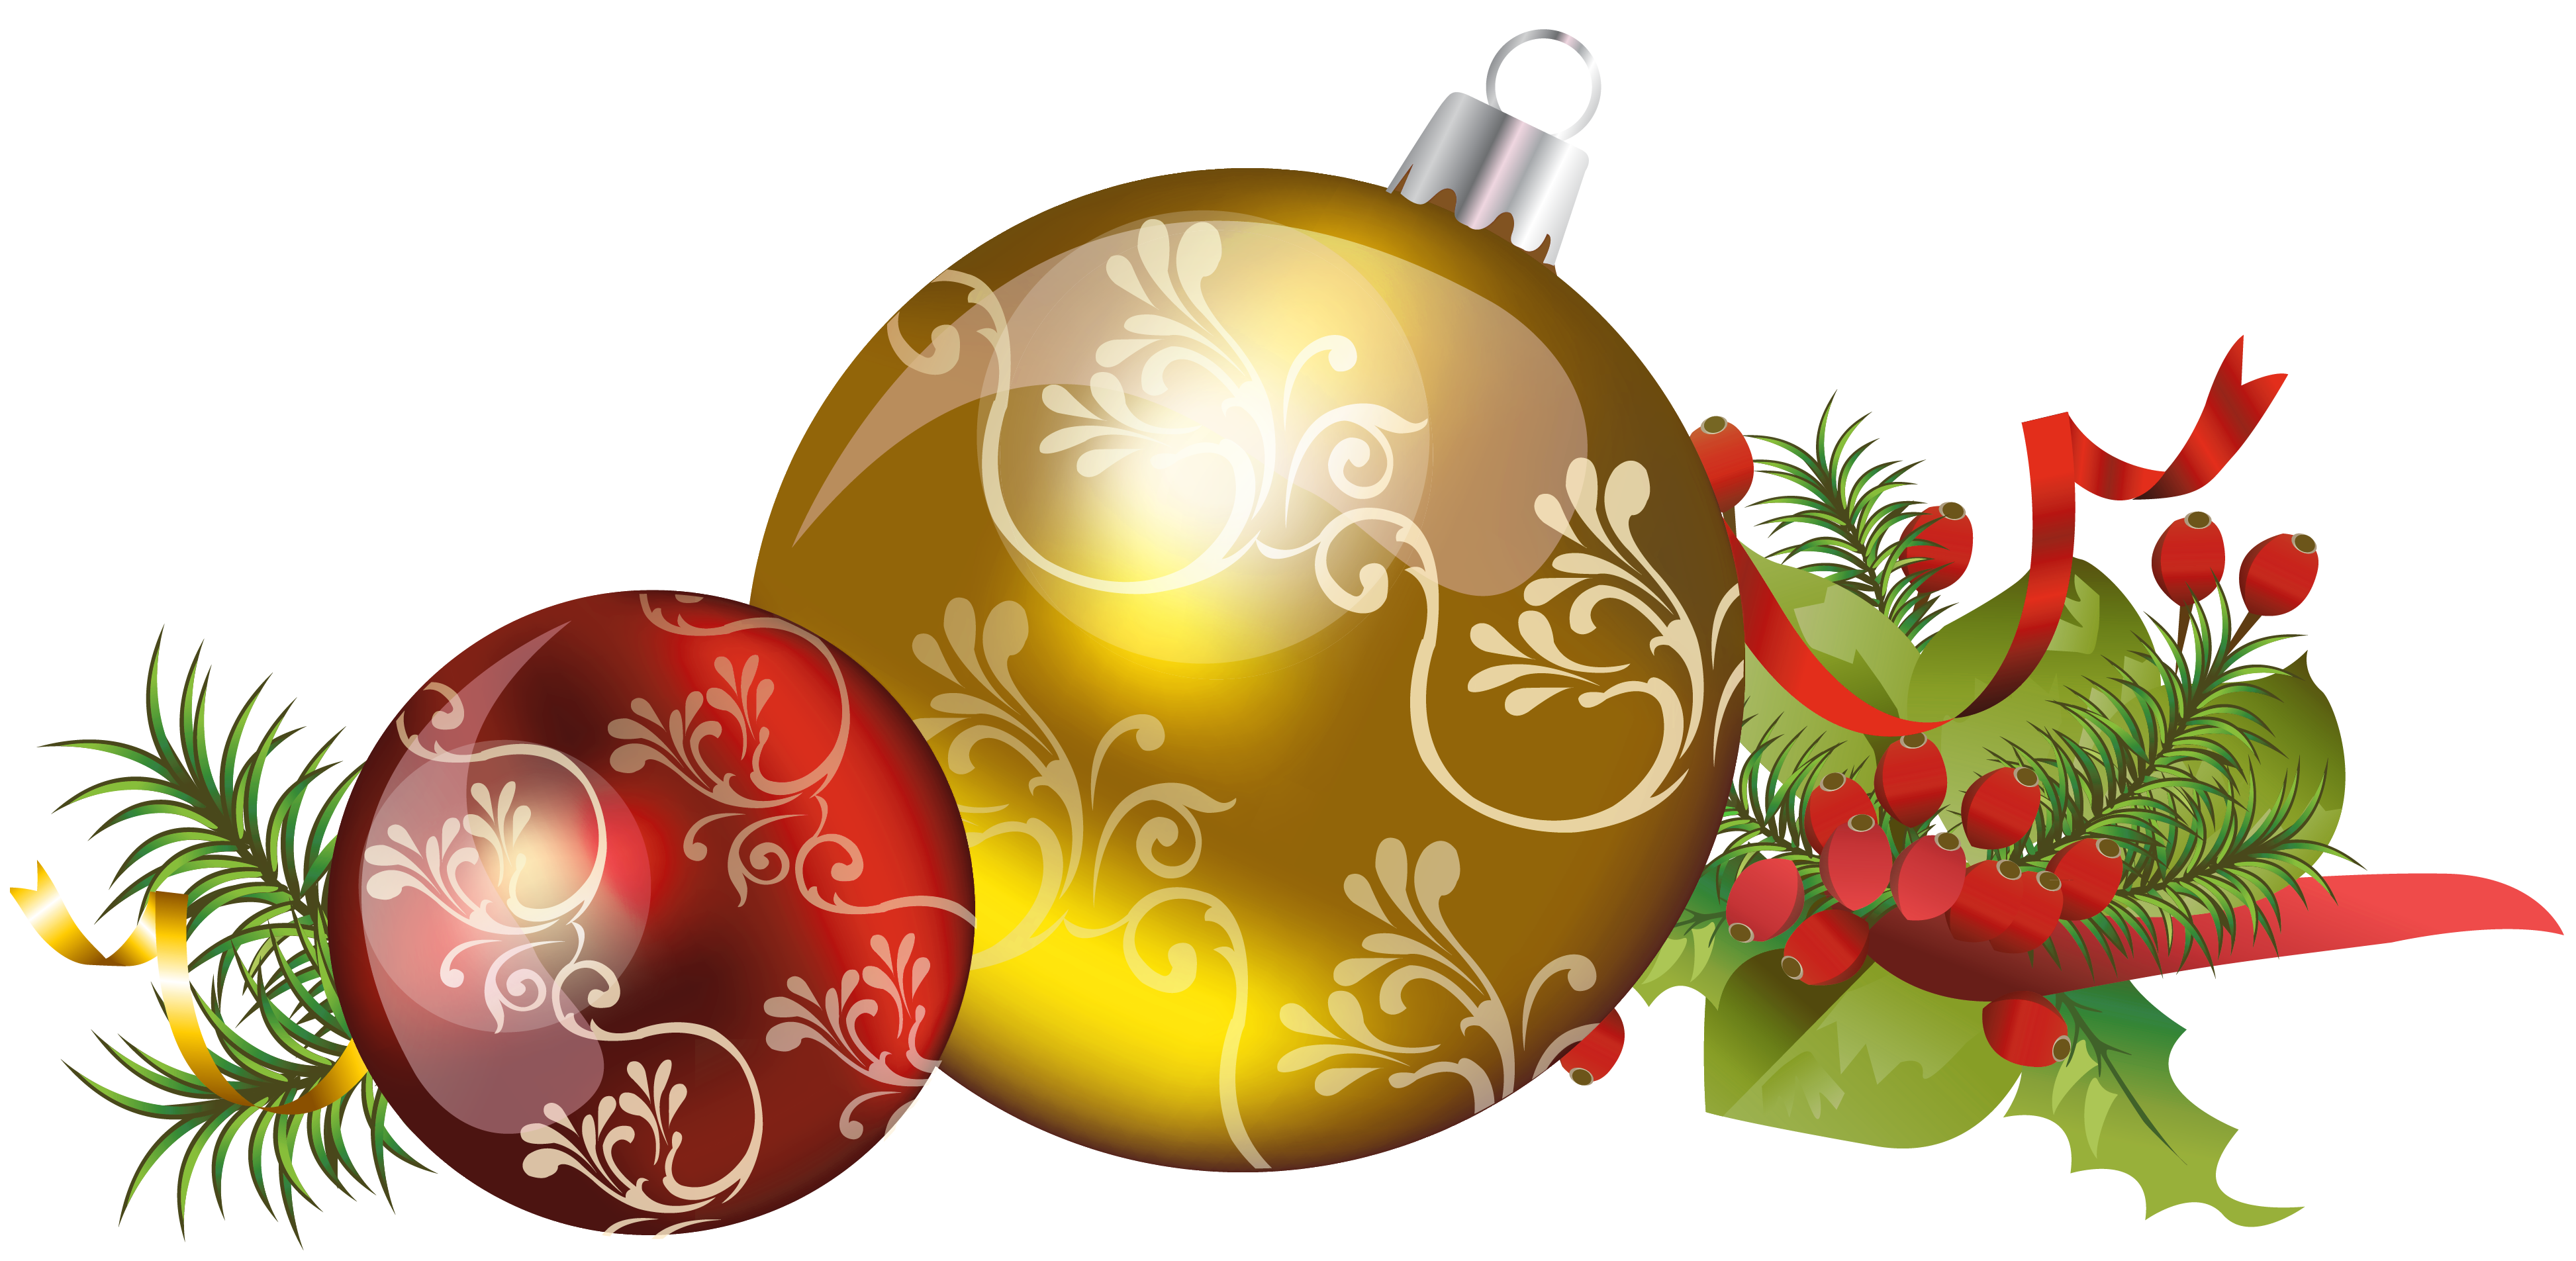 Holiday ball png. Christmas transparent images all